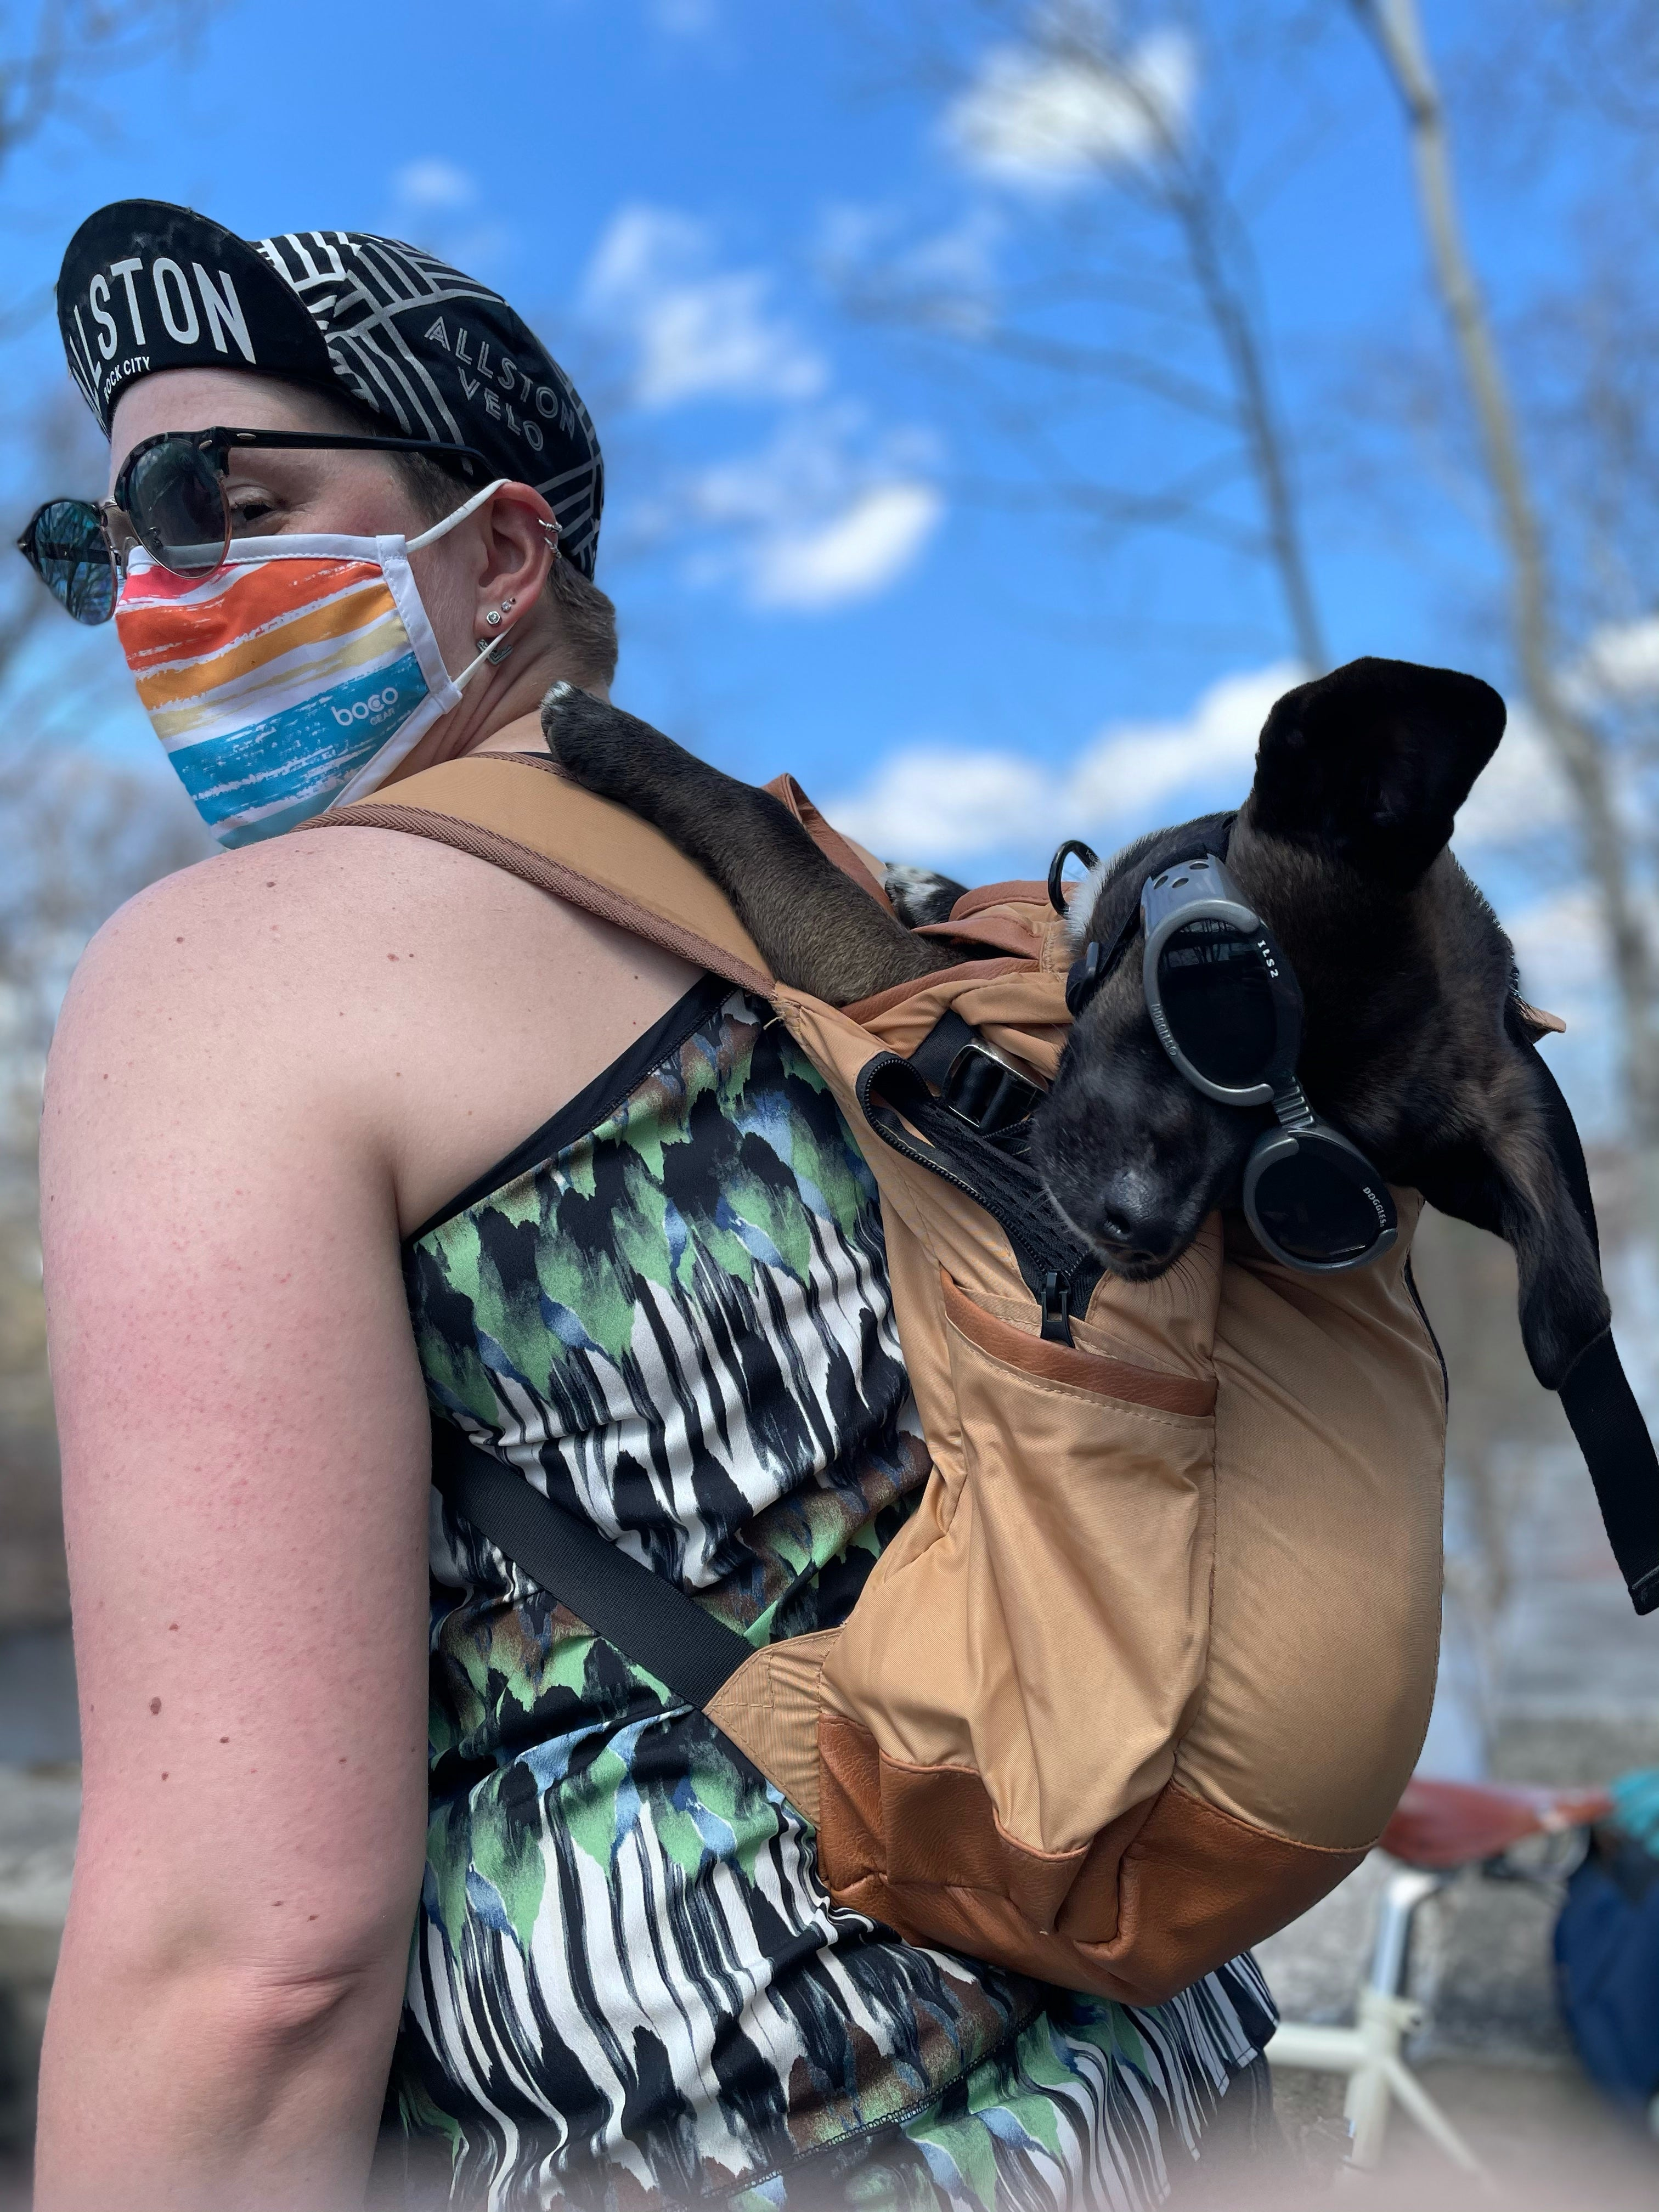 Watson chills in his owners K9 sport sack backpack carrier